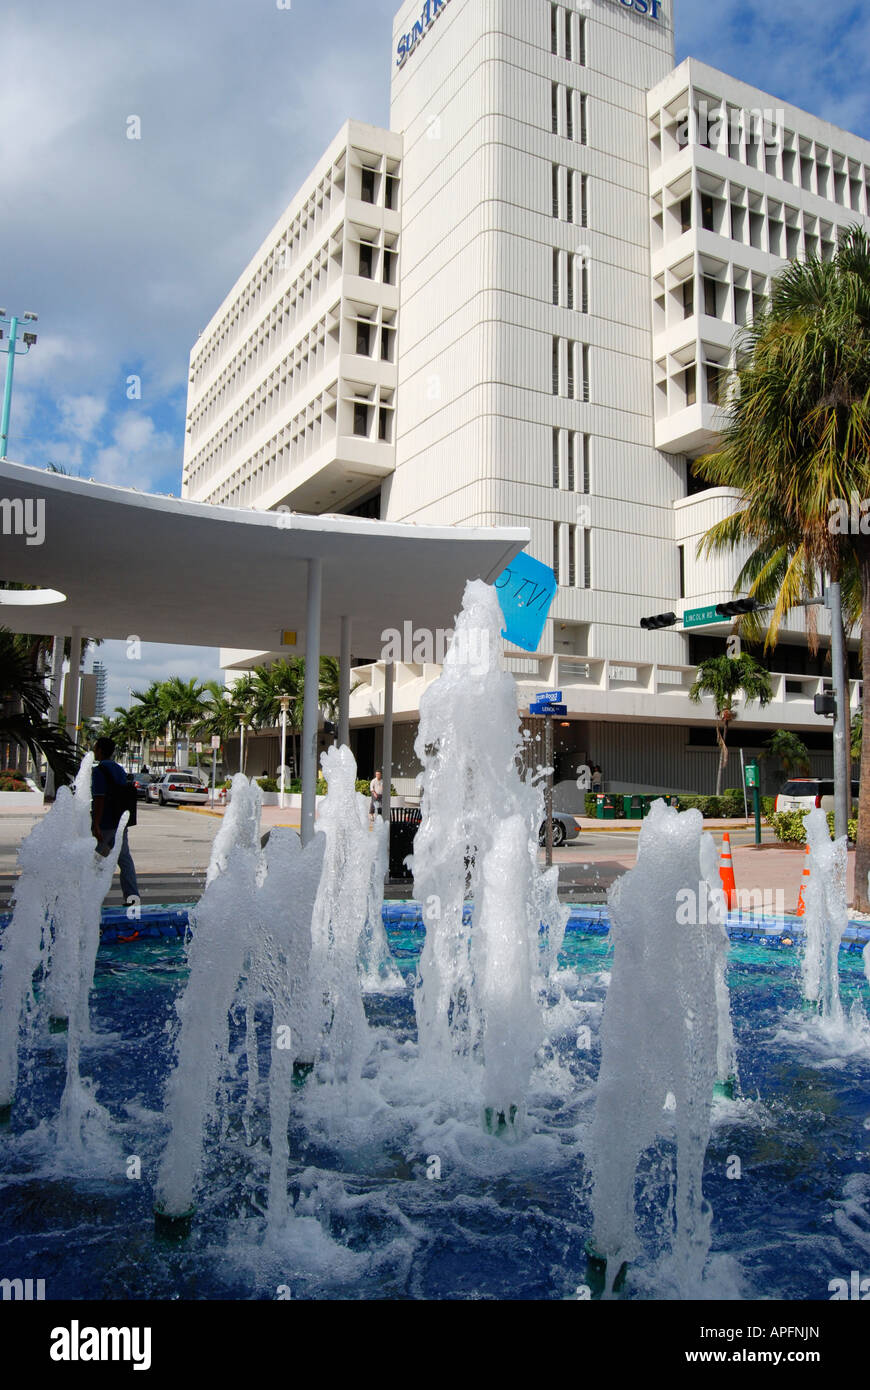 Fontaines sur Lincoln Road, Miami Beach, États-Unis Photo Stock